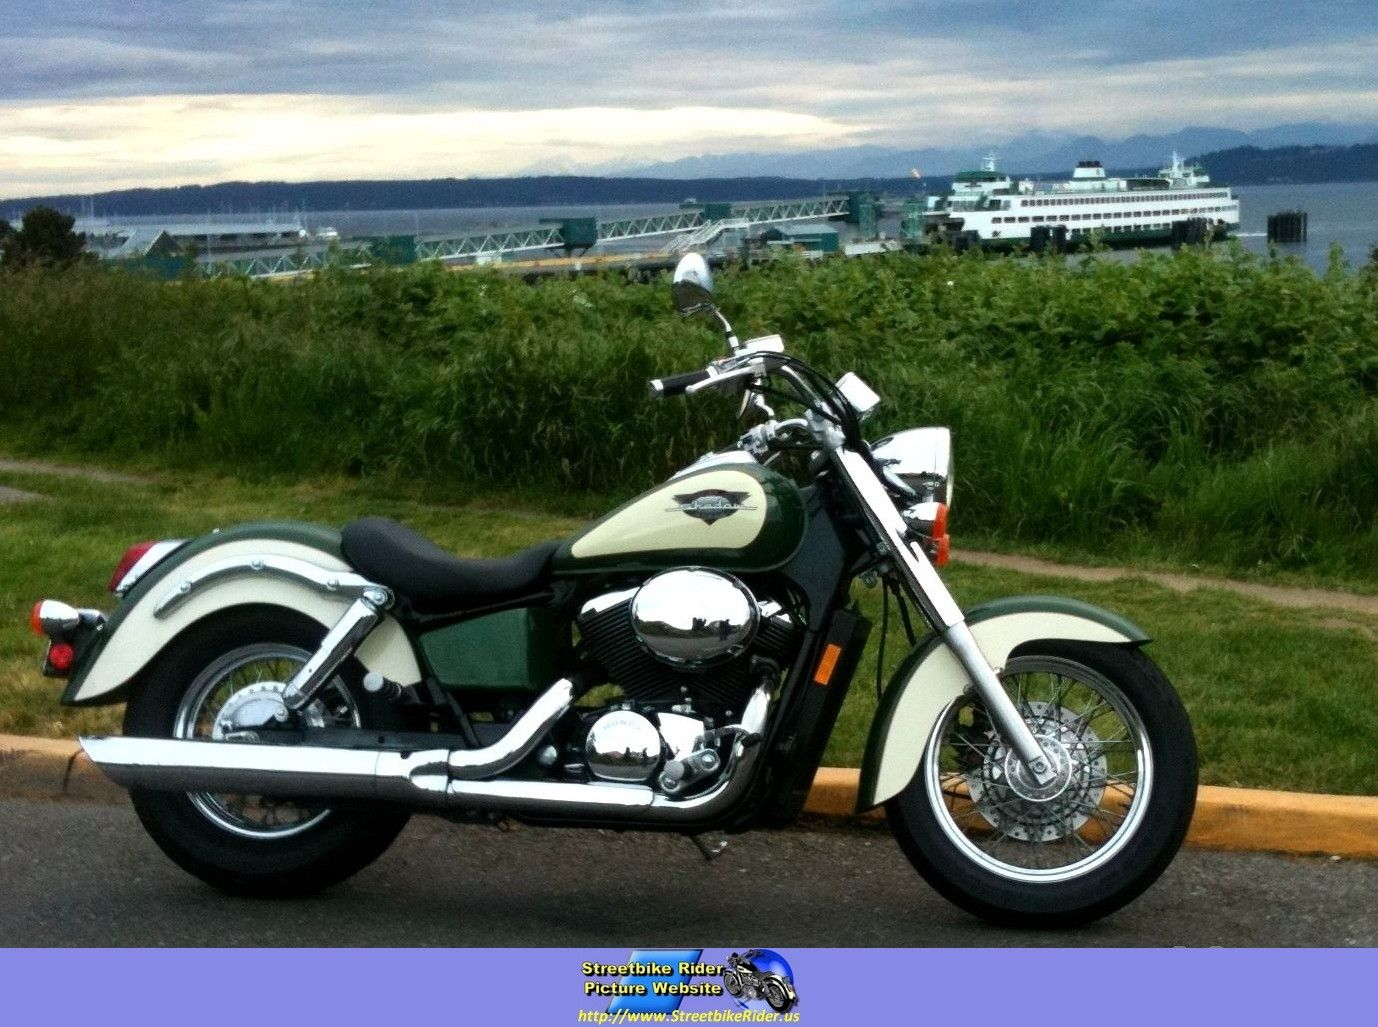 1999 honda shadow 750 ace green another view of my favorite bike